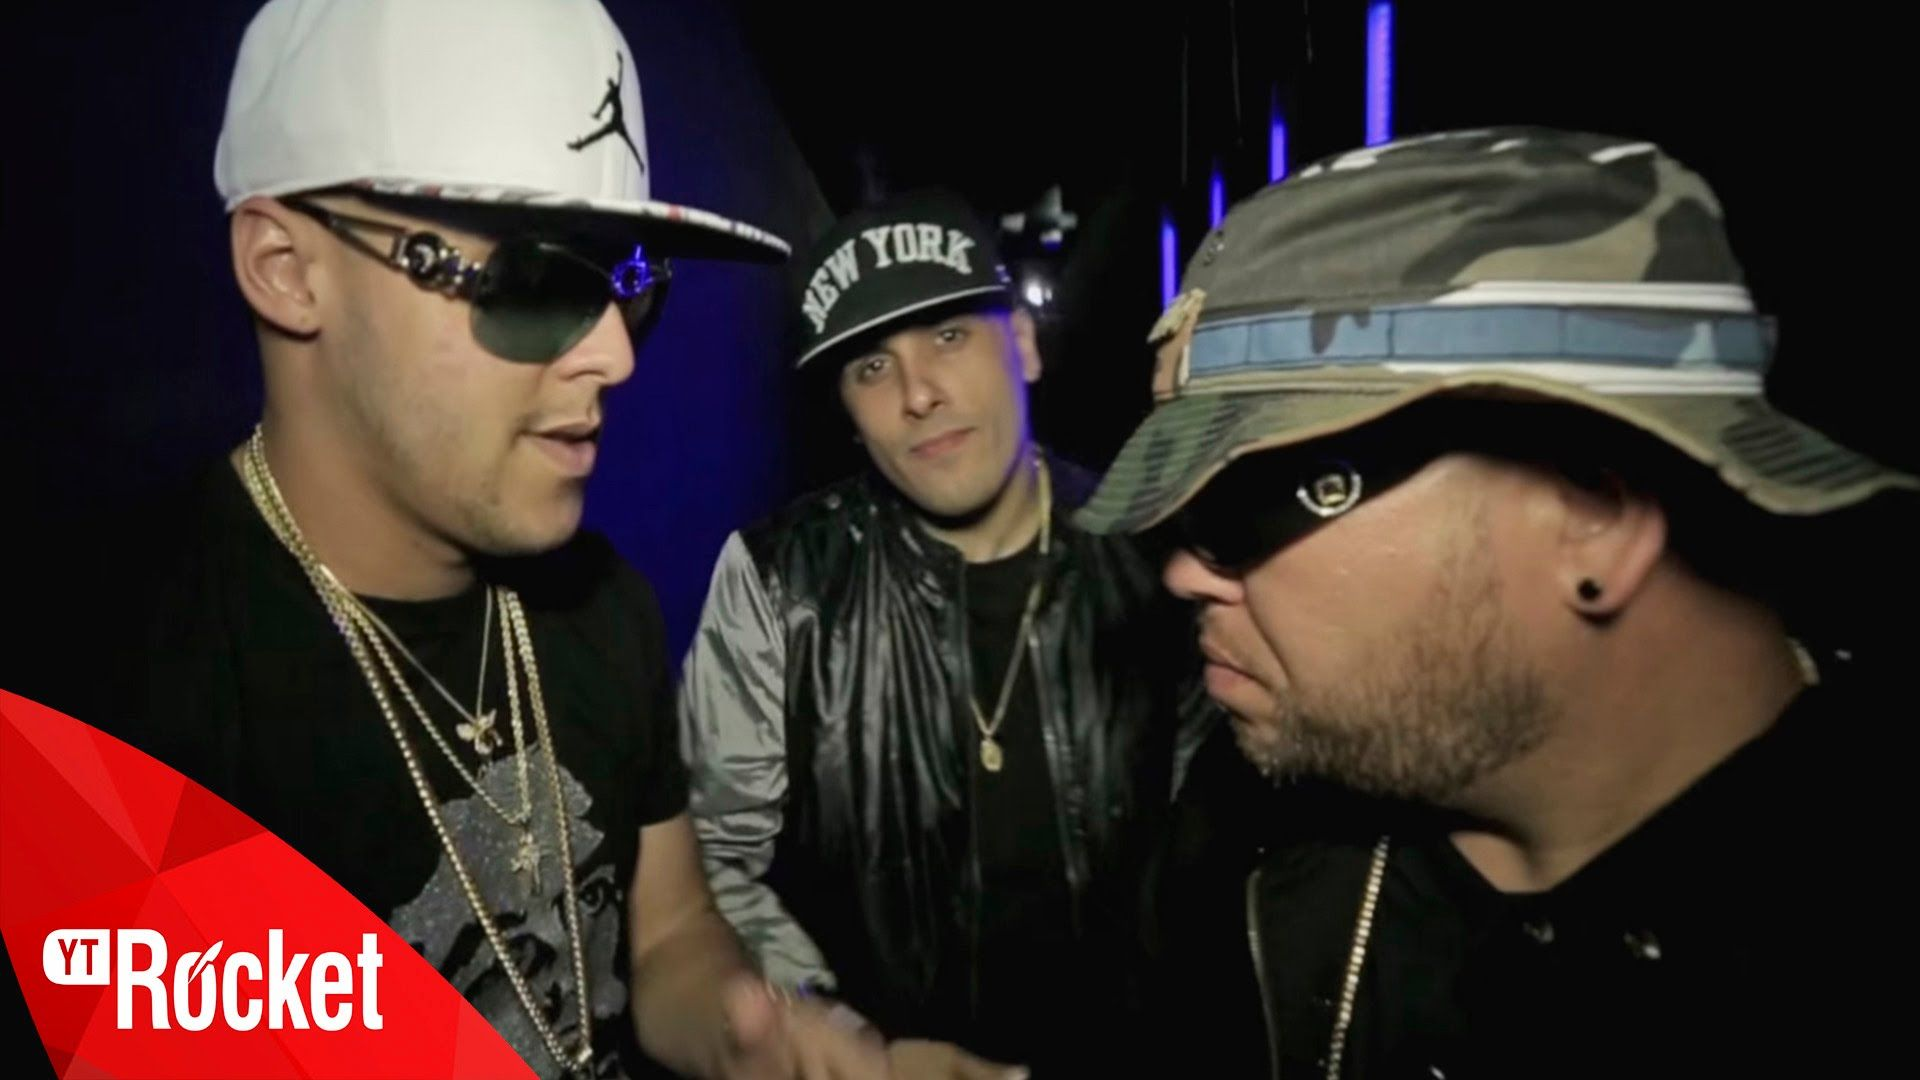 Nicky Jam Ft ñejo Voy A Beber Remix Video Oficial Nickyjampr Youtube Oficial Florez